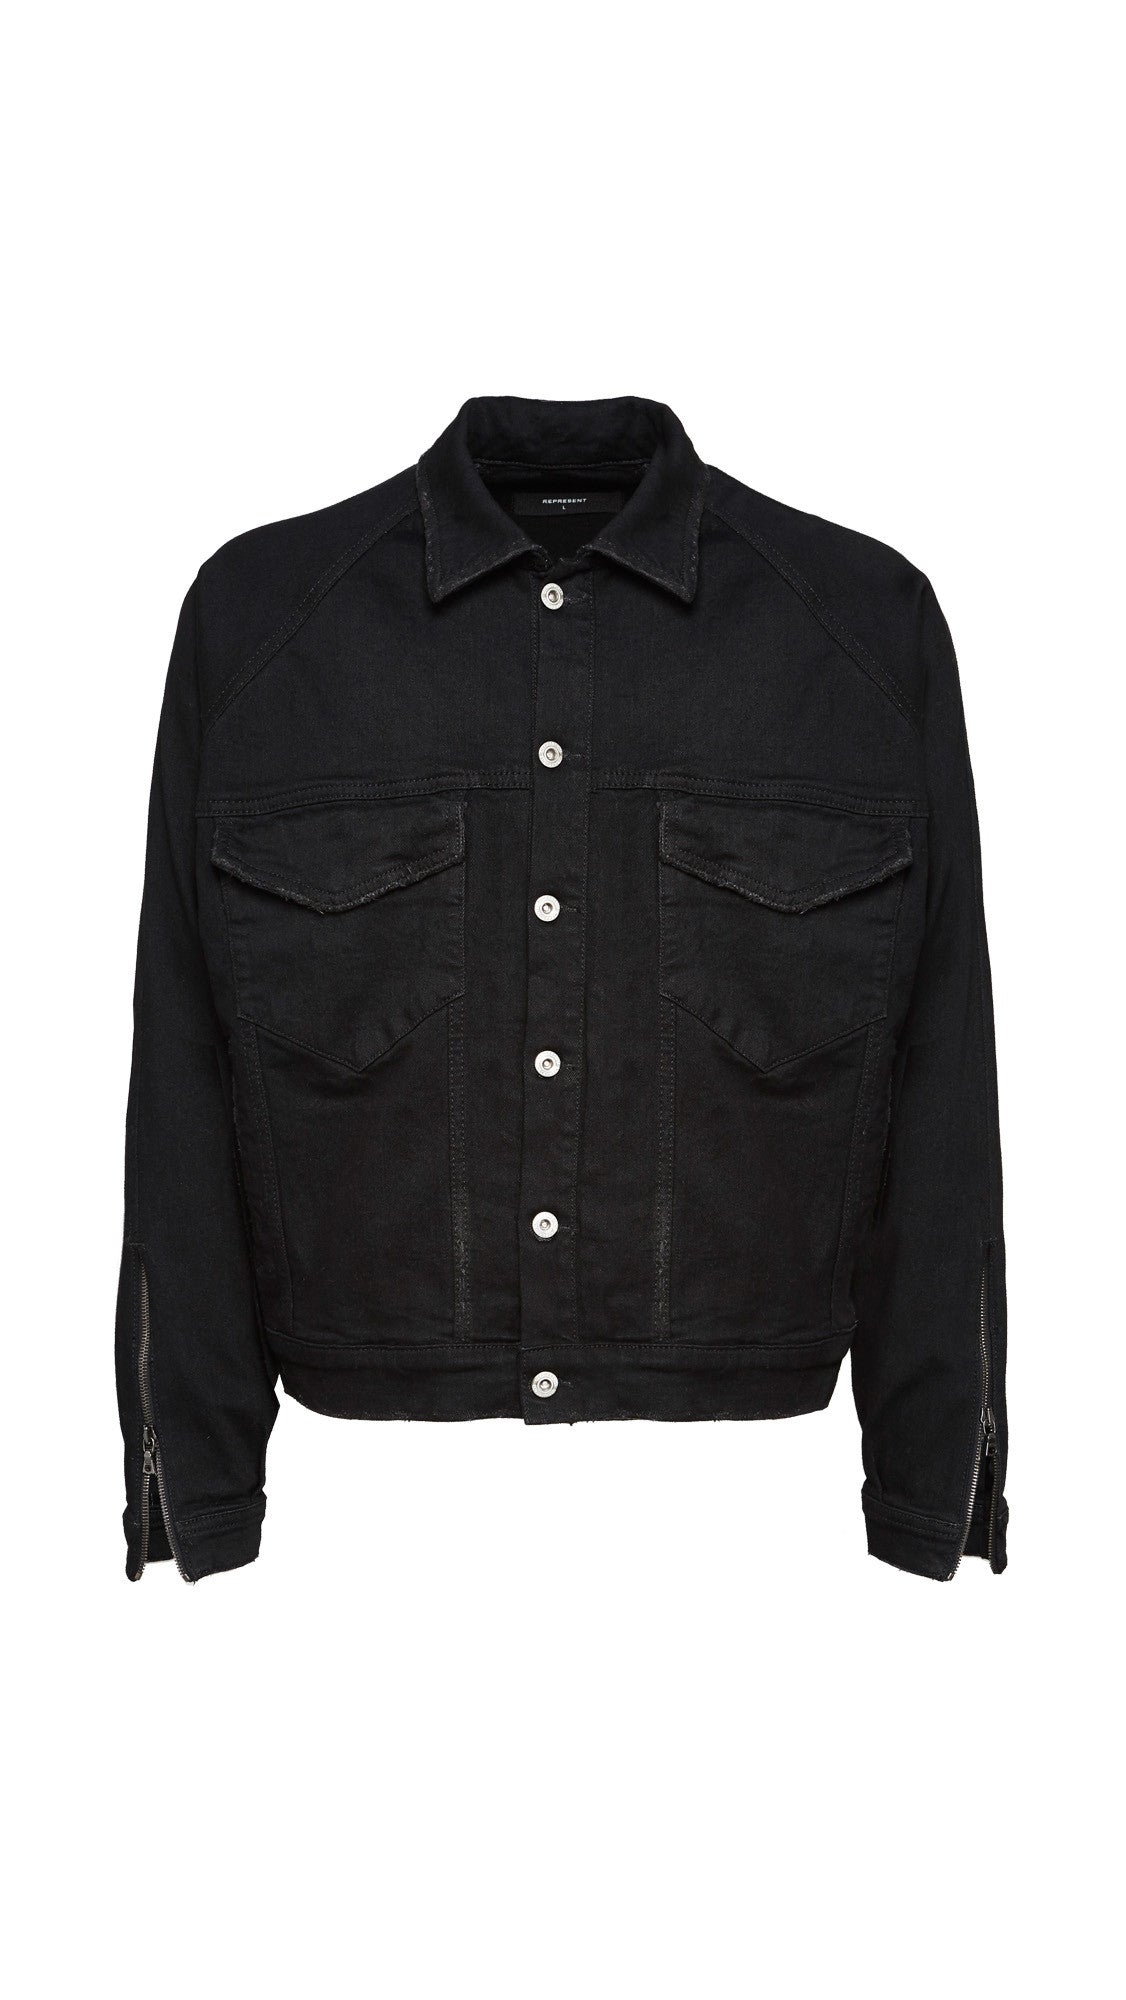 Basic Selvedge Denim Jacket - Black